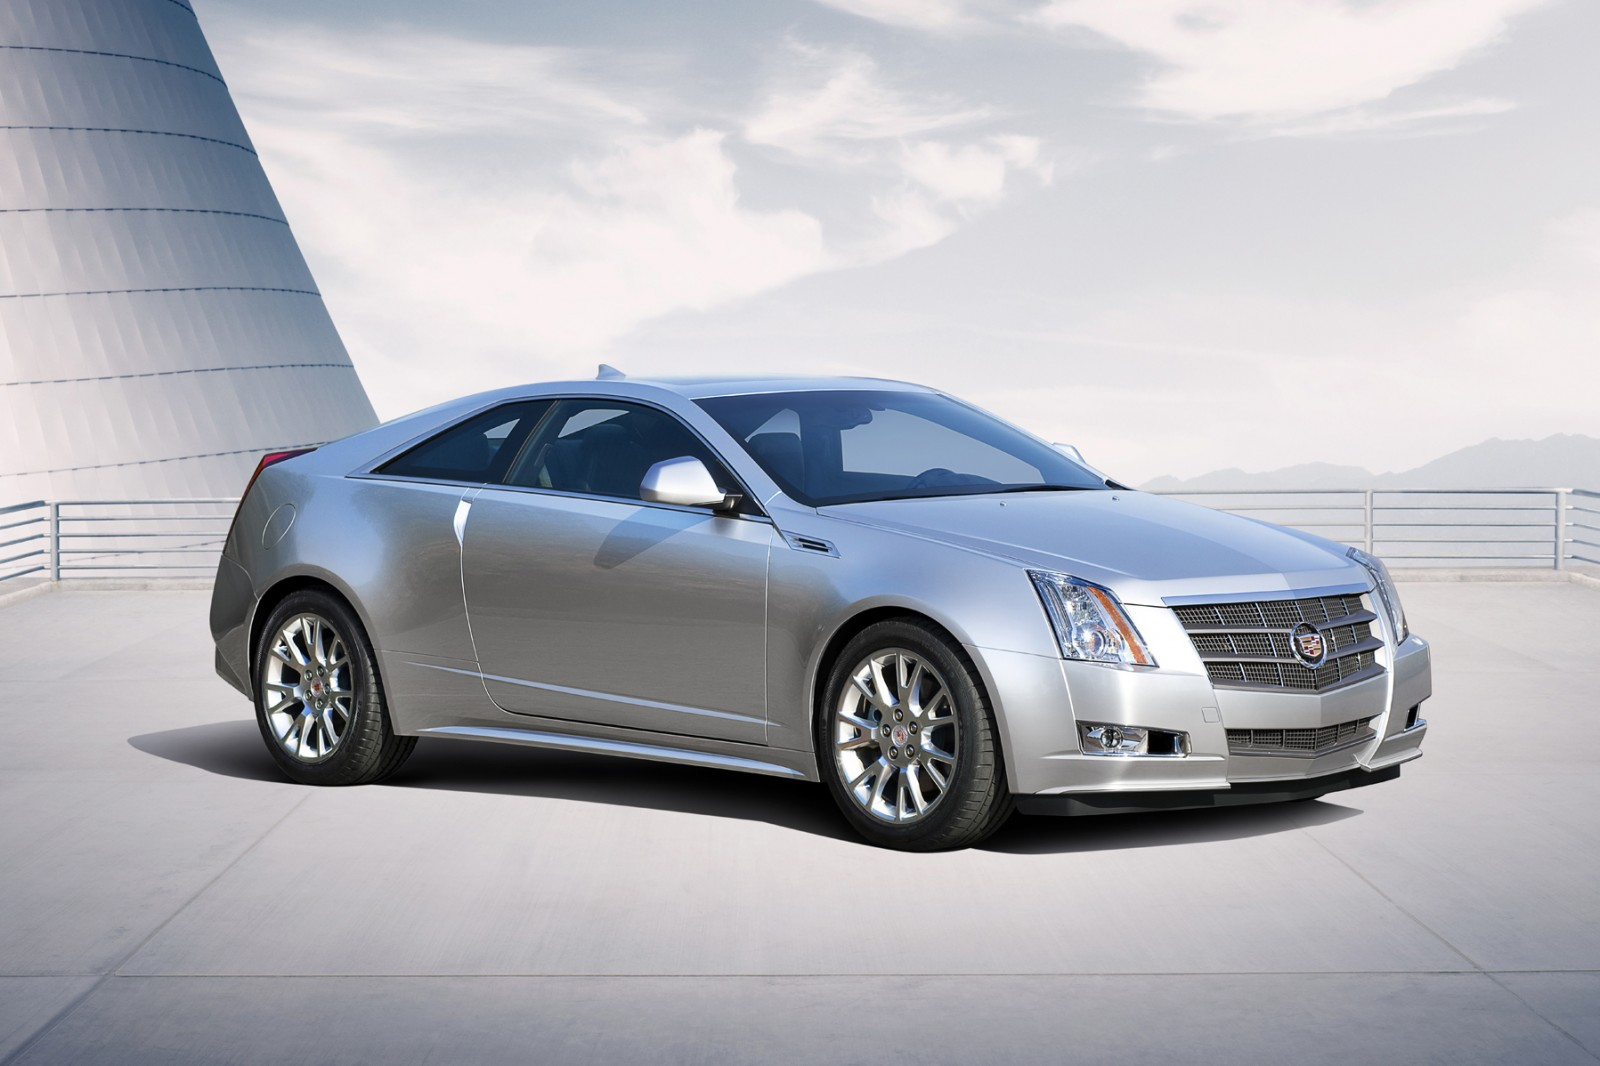 2013 cadillac cts v coupe base picture of 2013 cadillac cts v coupe 6. Cars Review. Best American Auto & Cars Review